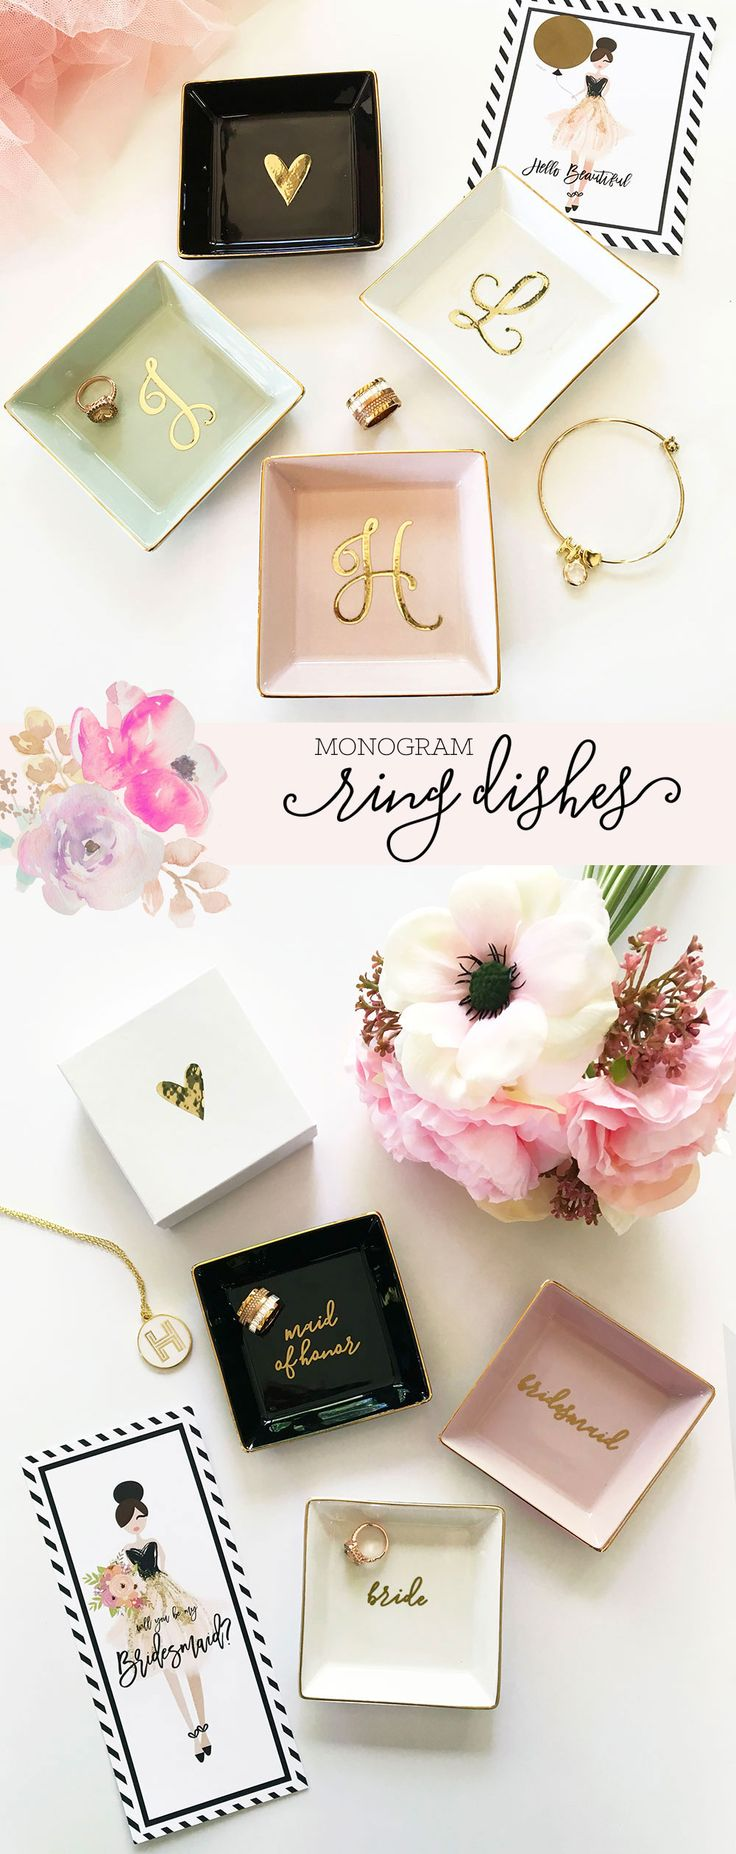 Monogram Ring Dishes | Bridesmaid Gifts | Bridesmaid Ring Dish | Personalized Jewelry Dish | Christmas Gifts for Women